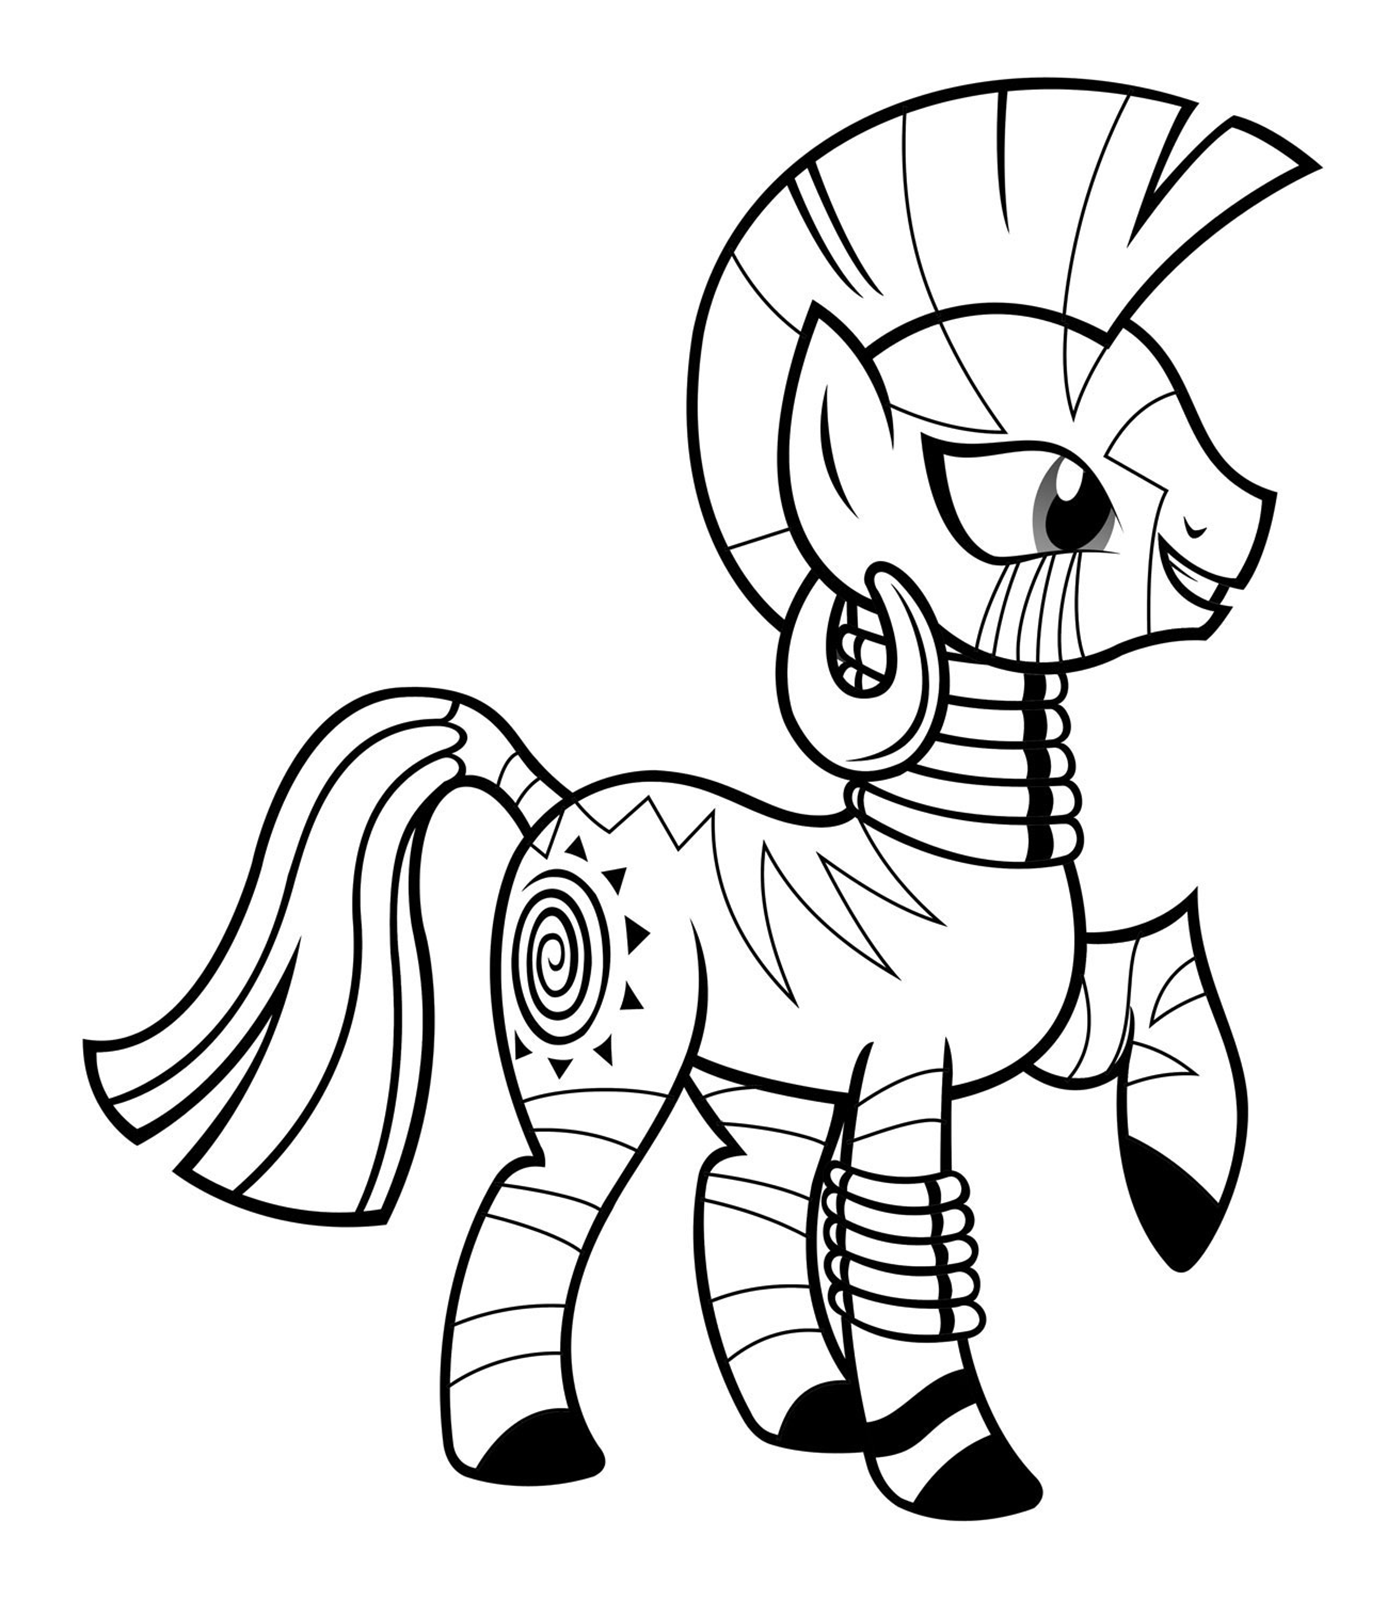 My Little Pony - Zecora is a Twilight Sparkle and Apple Bloom's friend